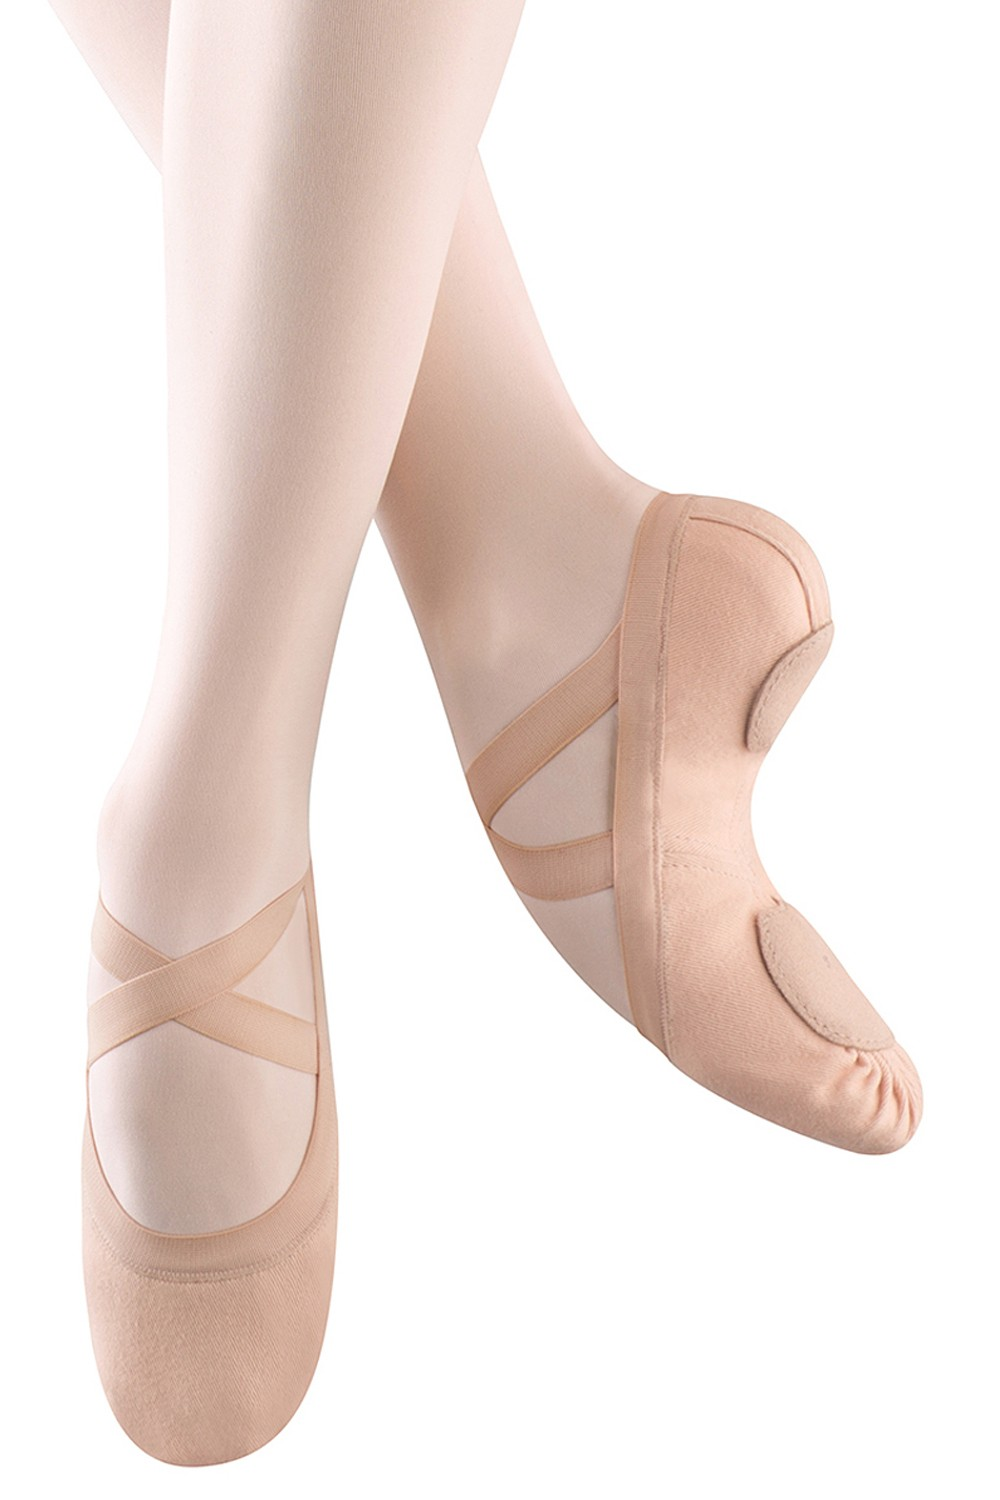 Synchrony - Fille Girl's Ballet Shoes